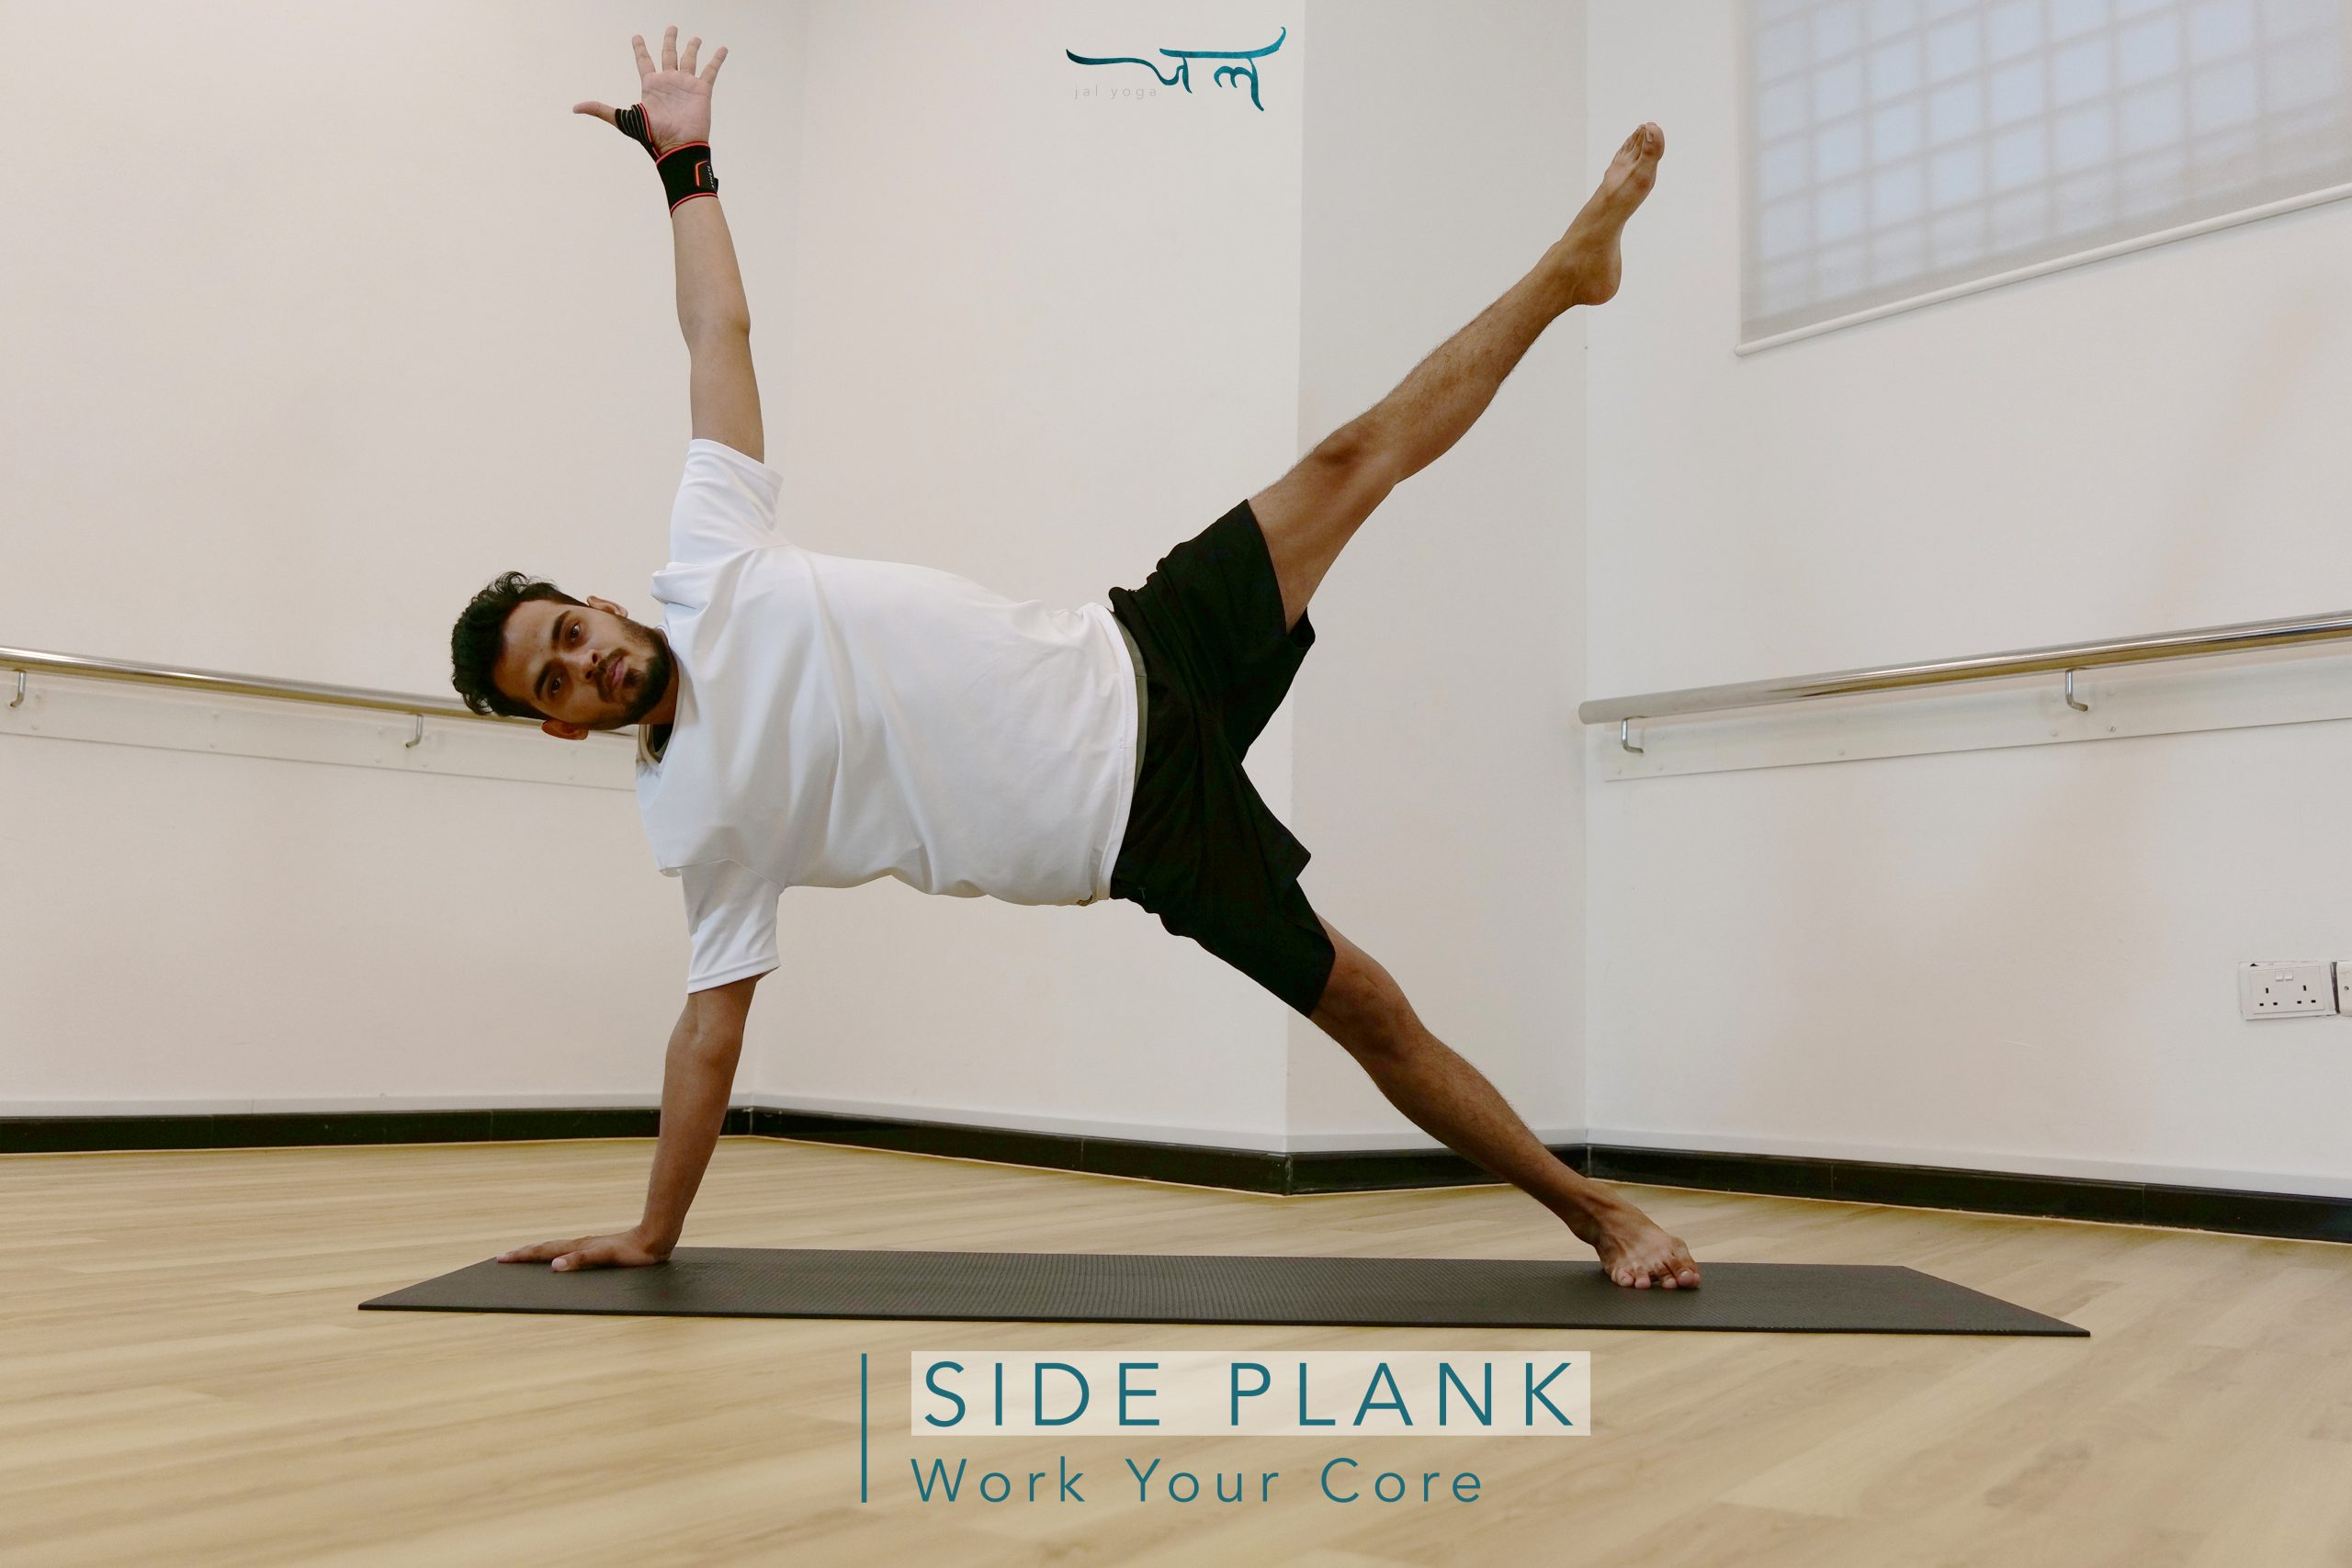 Side Plank | Core Workout at Home To Flatten Your Belly